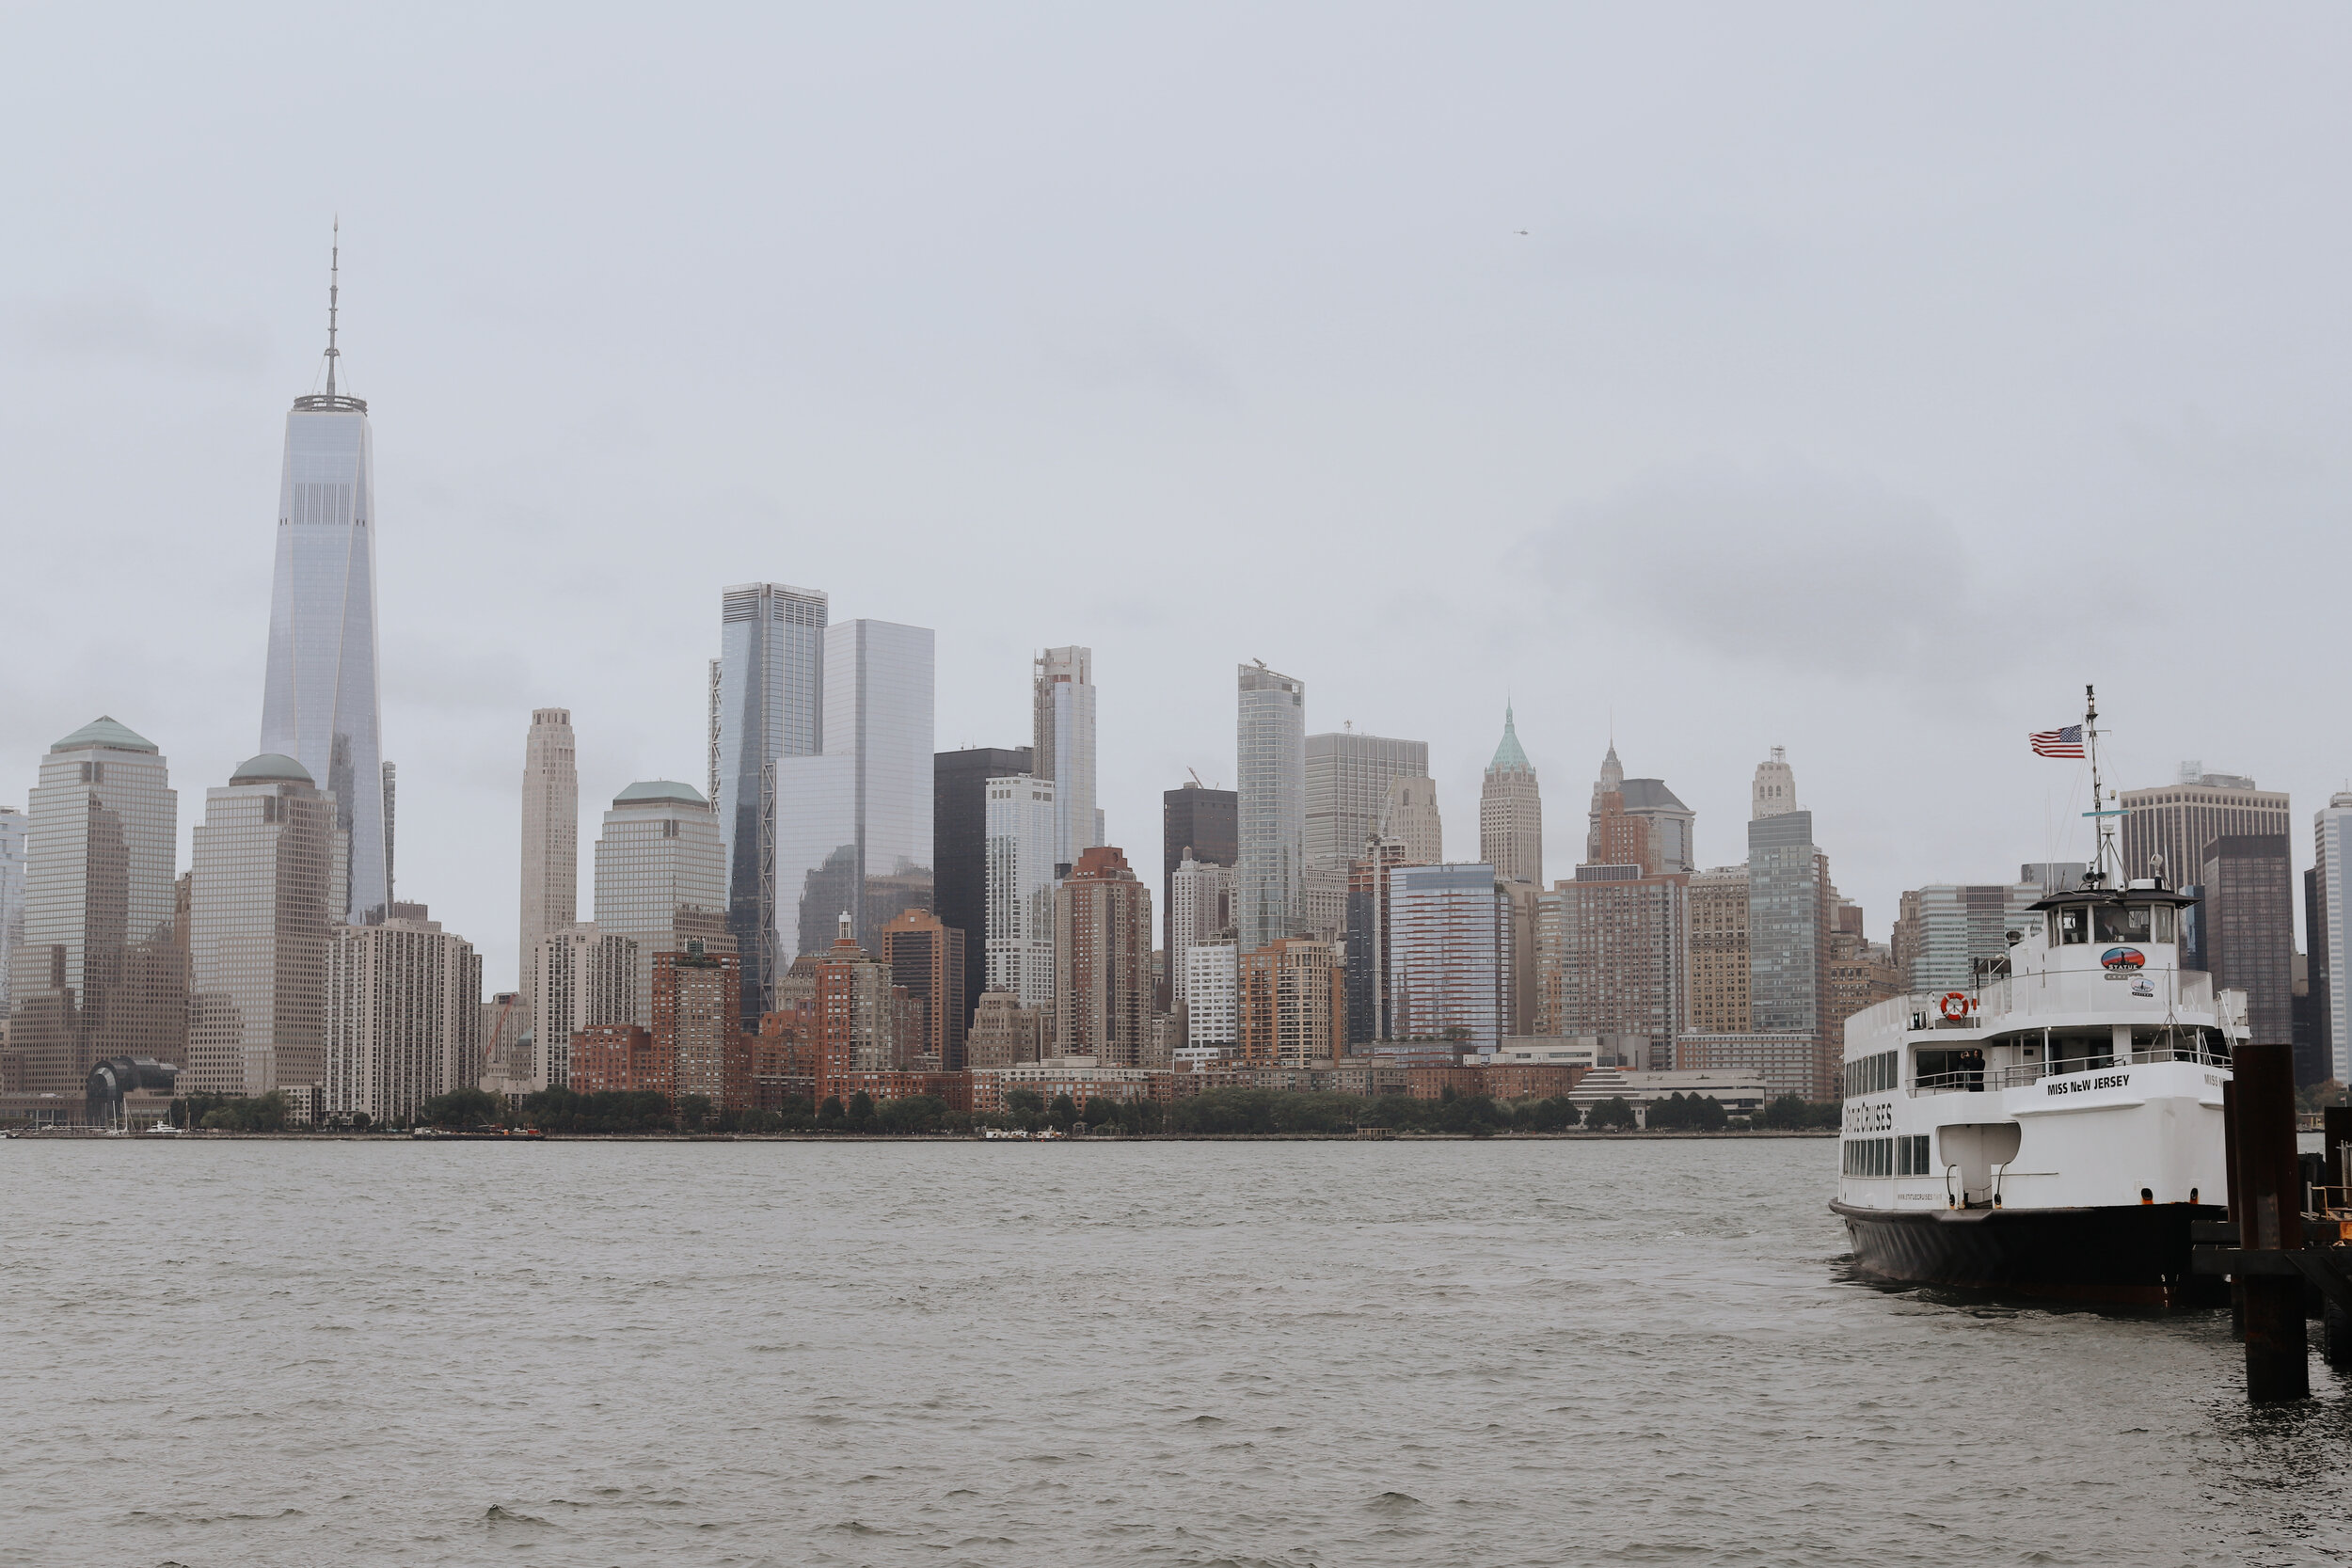 View of New York City from Liberty State Park (Jersey City, New Jersey).